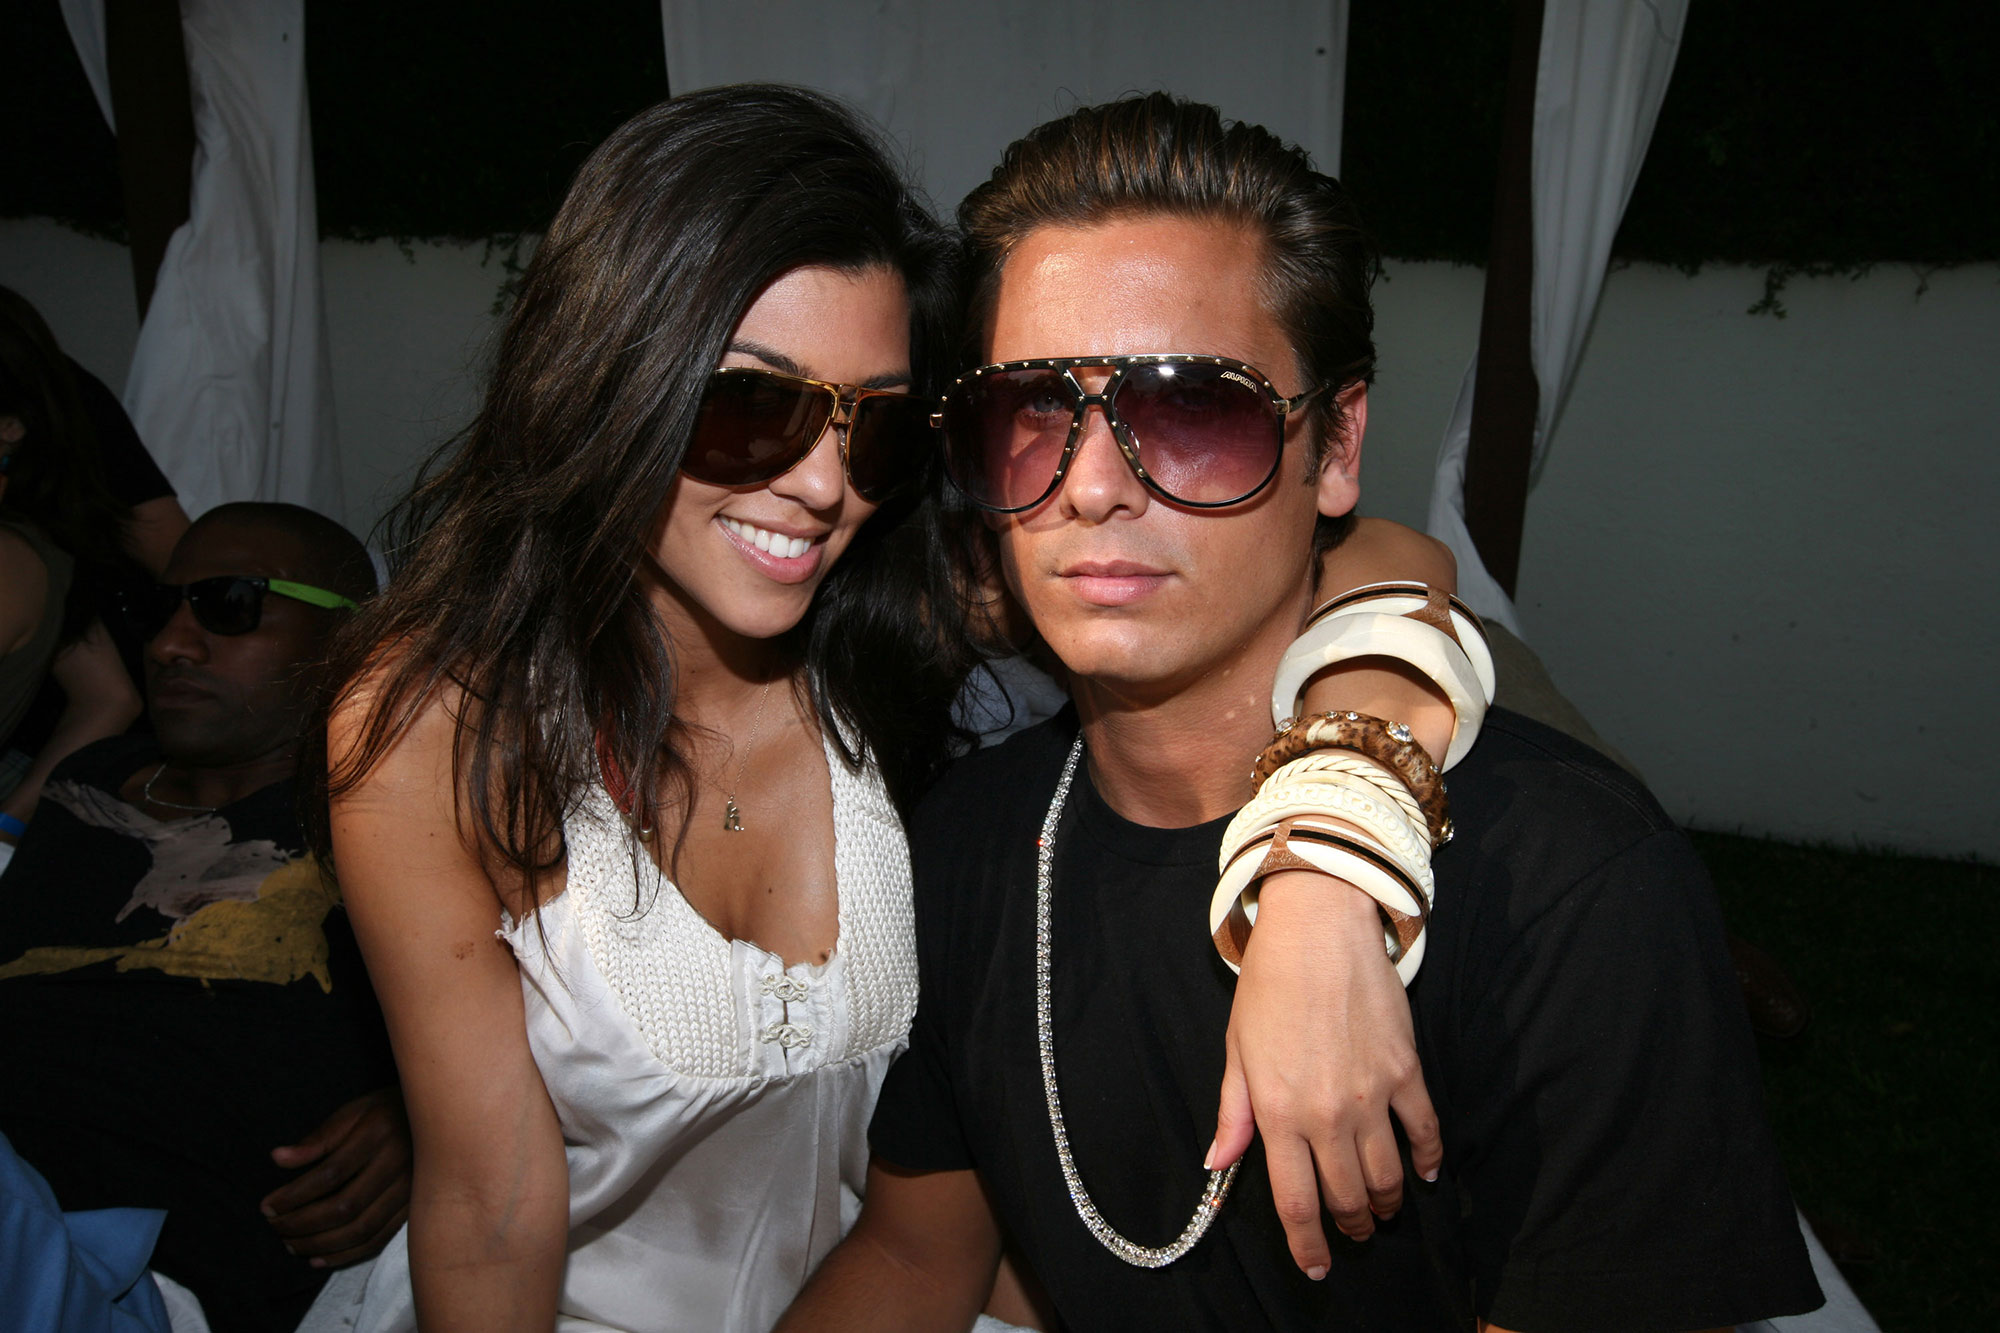 Kourtney Kardashian and Scott Disick - Kourtney accused her boyfriend of cheating on her on the season 2 premiere of KUWTK after she found texts from another woman on his phone. The pair split shortly after.